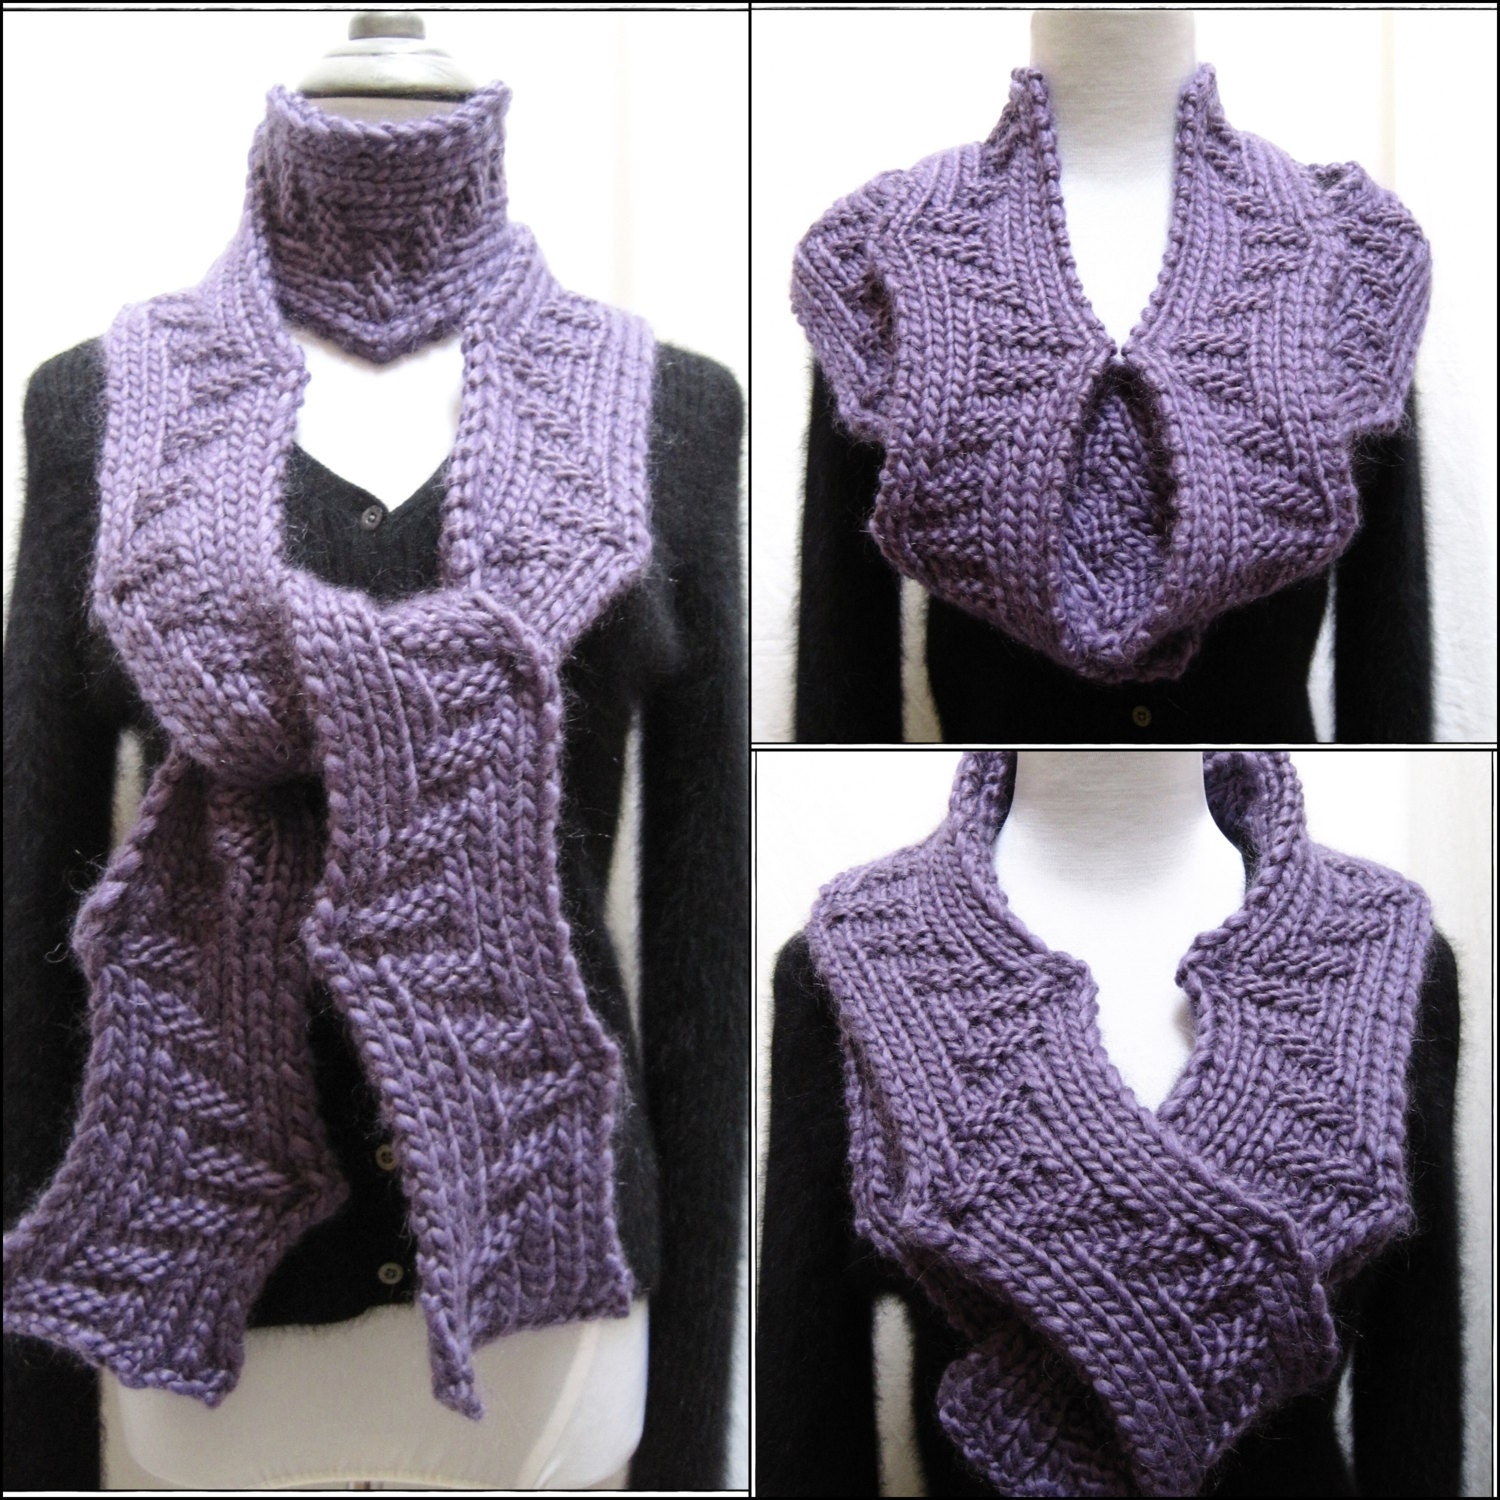 Knitting Pattern For Bulky Scarf : Hand Knitting Pattern PDF Scarf Super Bulky Reversible